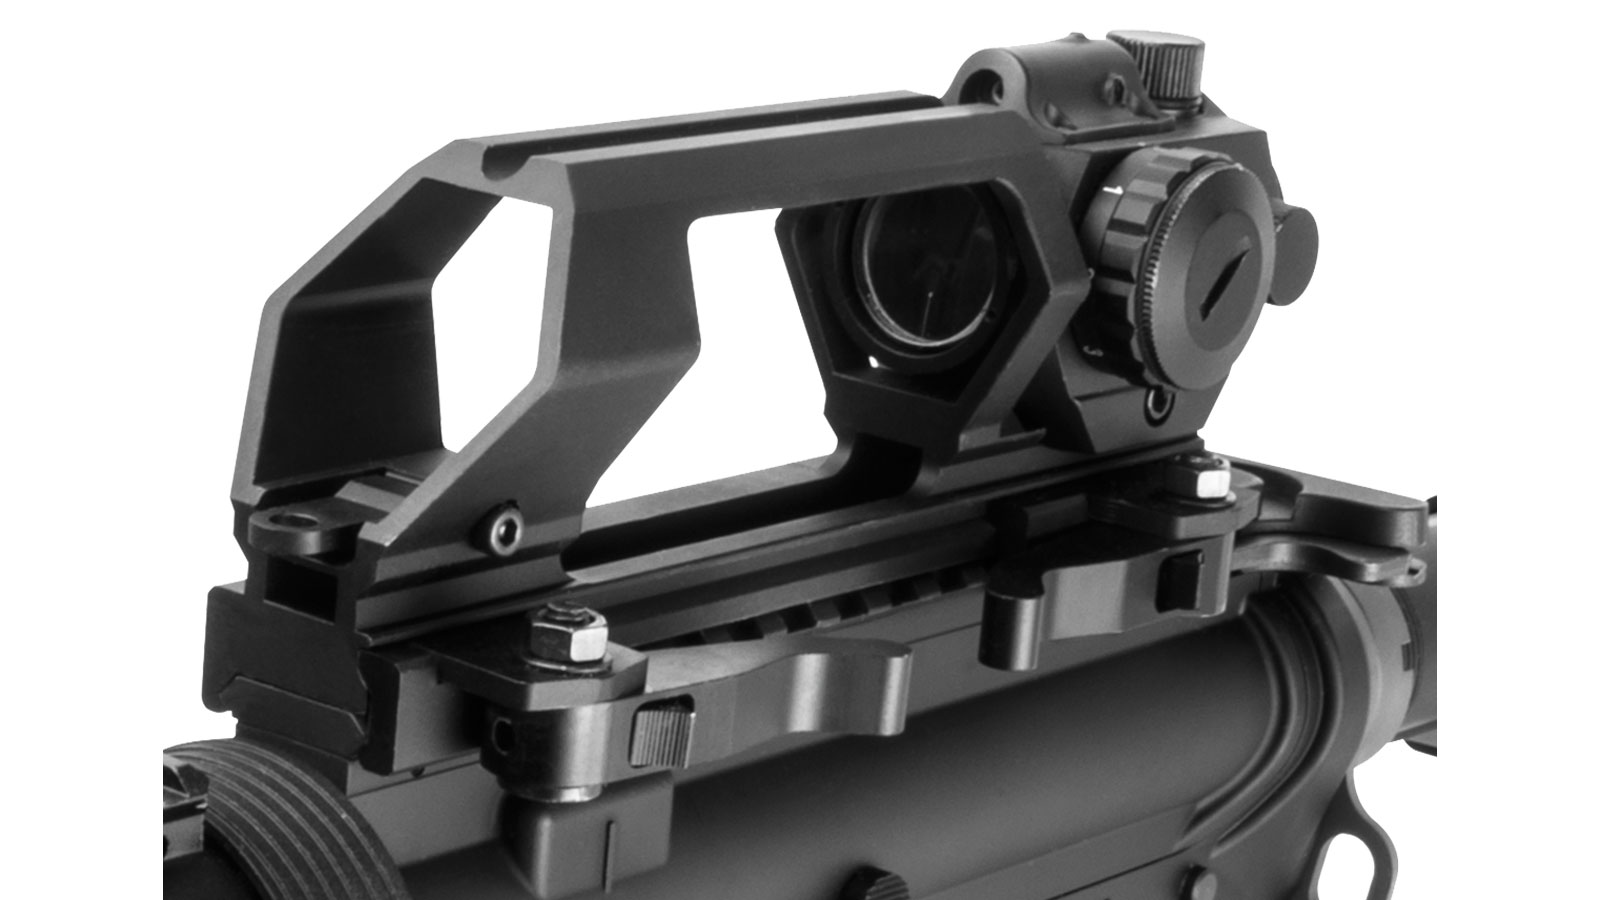 NC Star Gen II Carry Handle Red Dot Sight